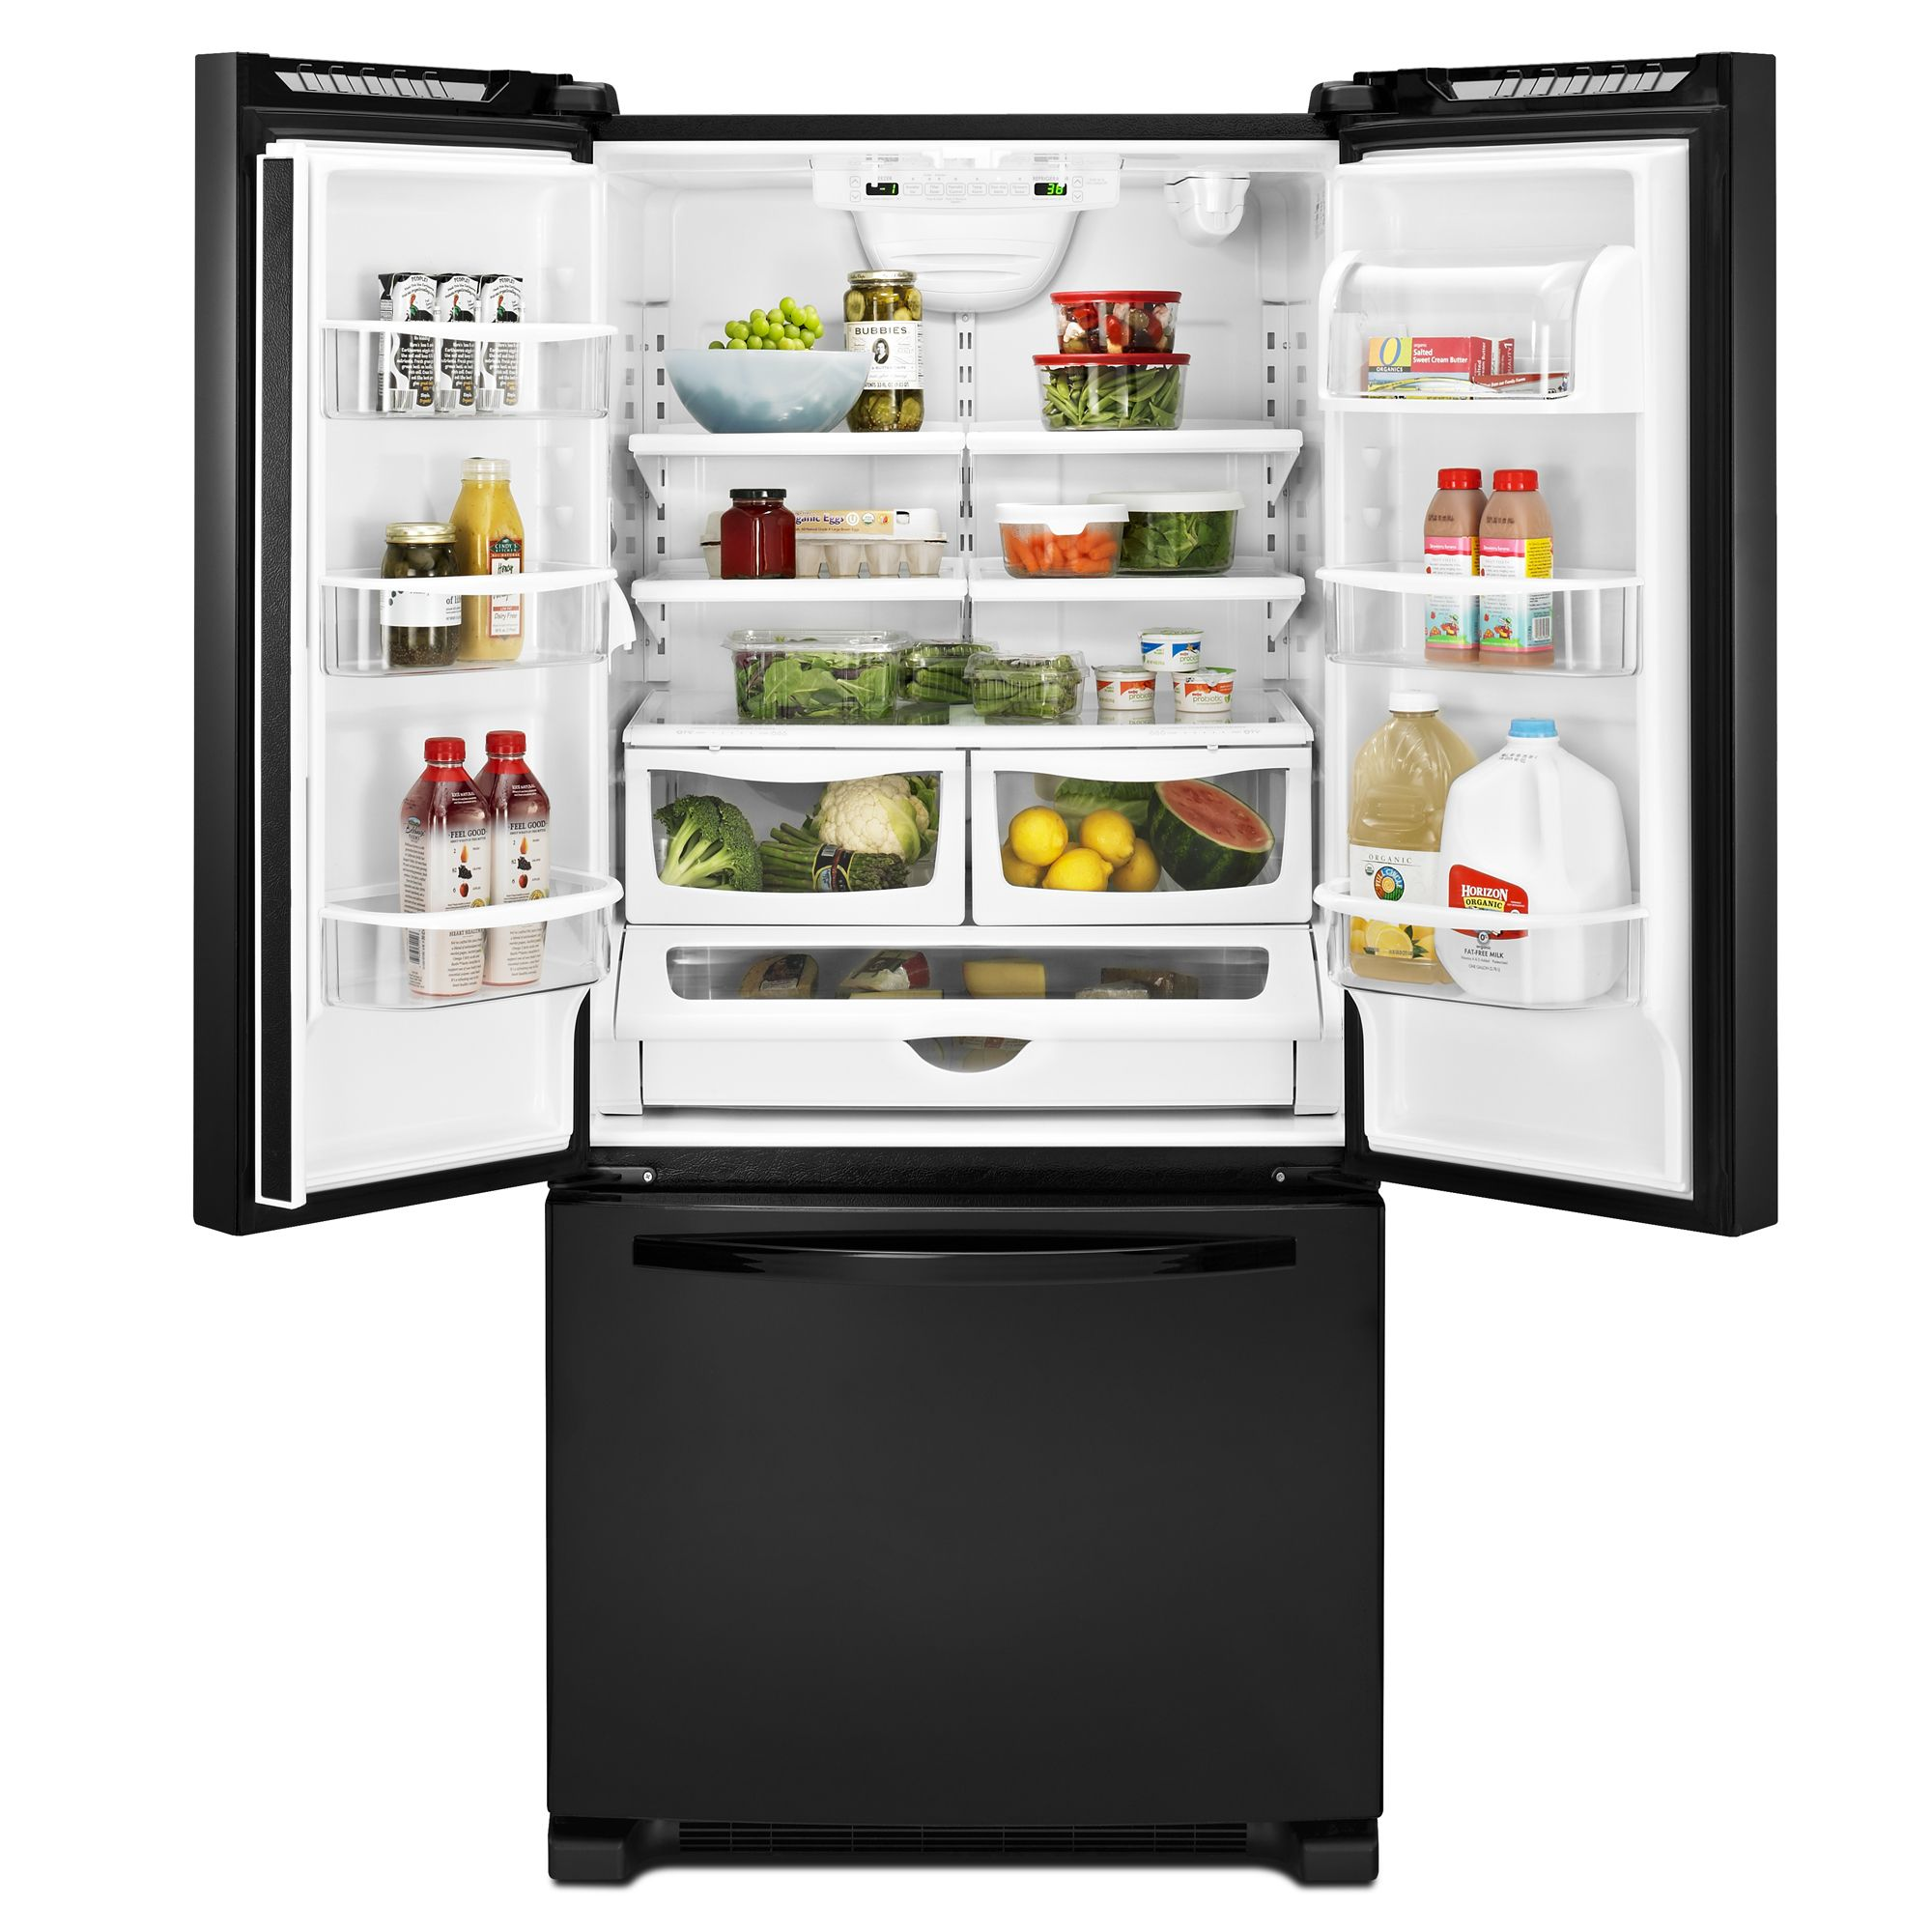 "Kenmore 72009 22 cu. ft. 33"" French-Door Bottom-Freezer Refrigerator w/Internal Dispenser - Black"